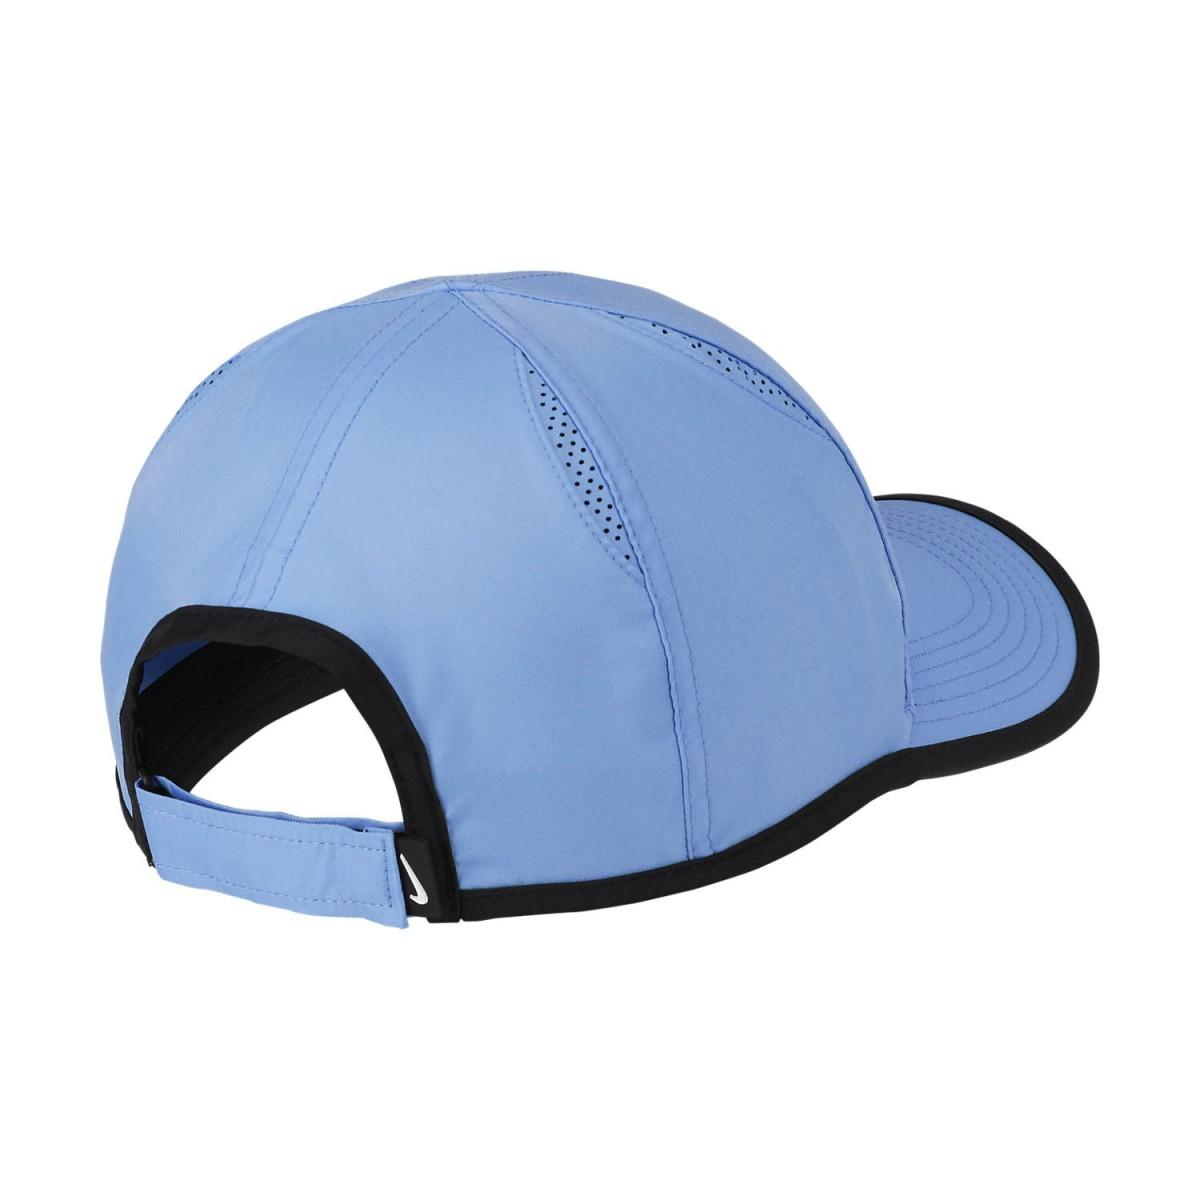 Теннисная кепка Nike Feather Light Cap royal pulse/white